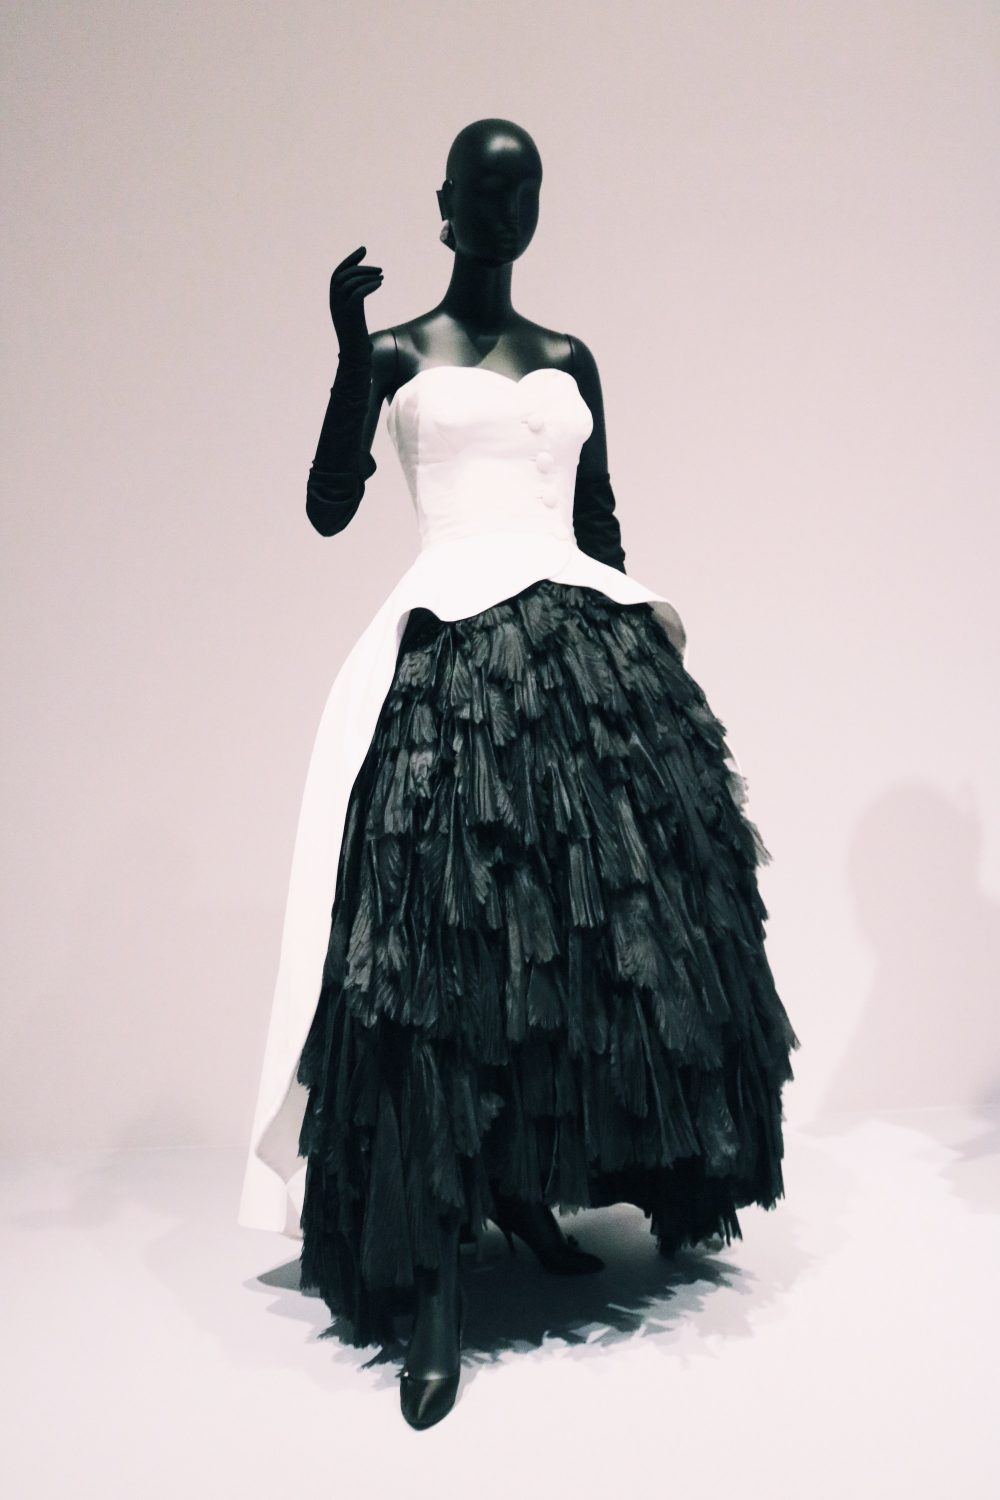 Fabulous Fashion: From Dior's New Look to Now at the Philadelphia Museum of Art